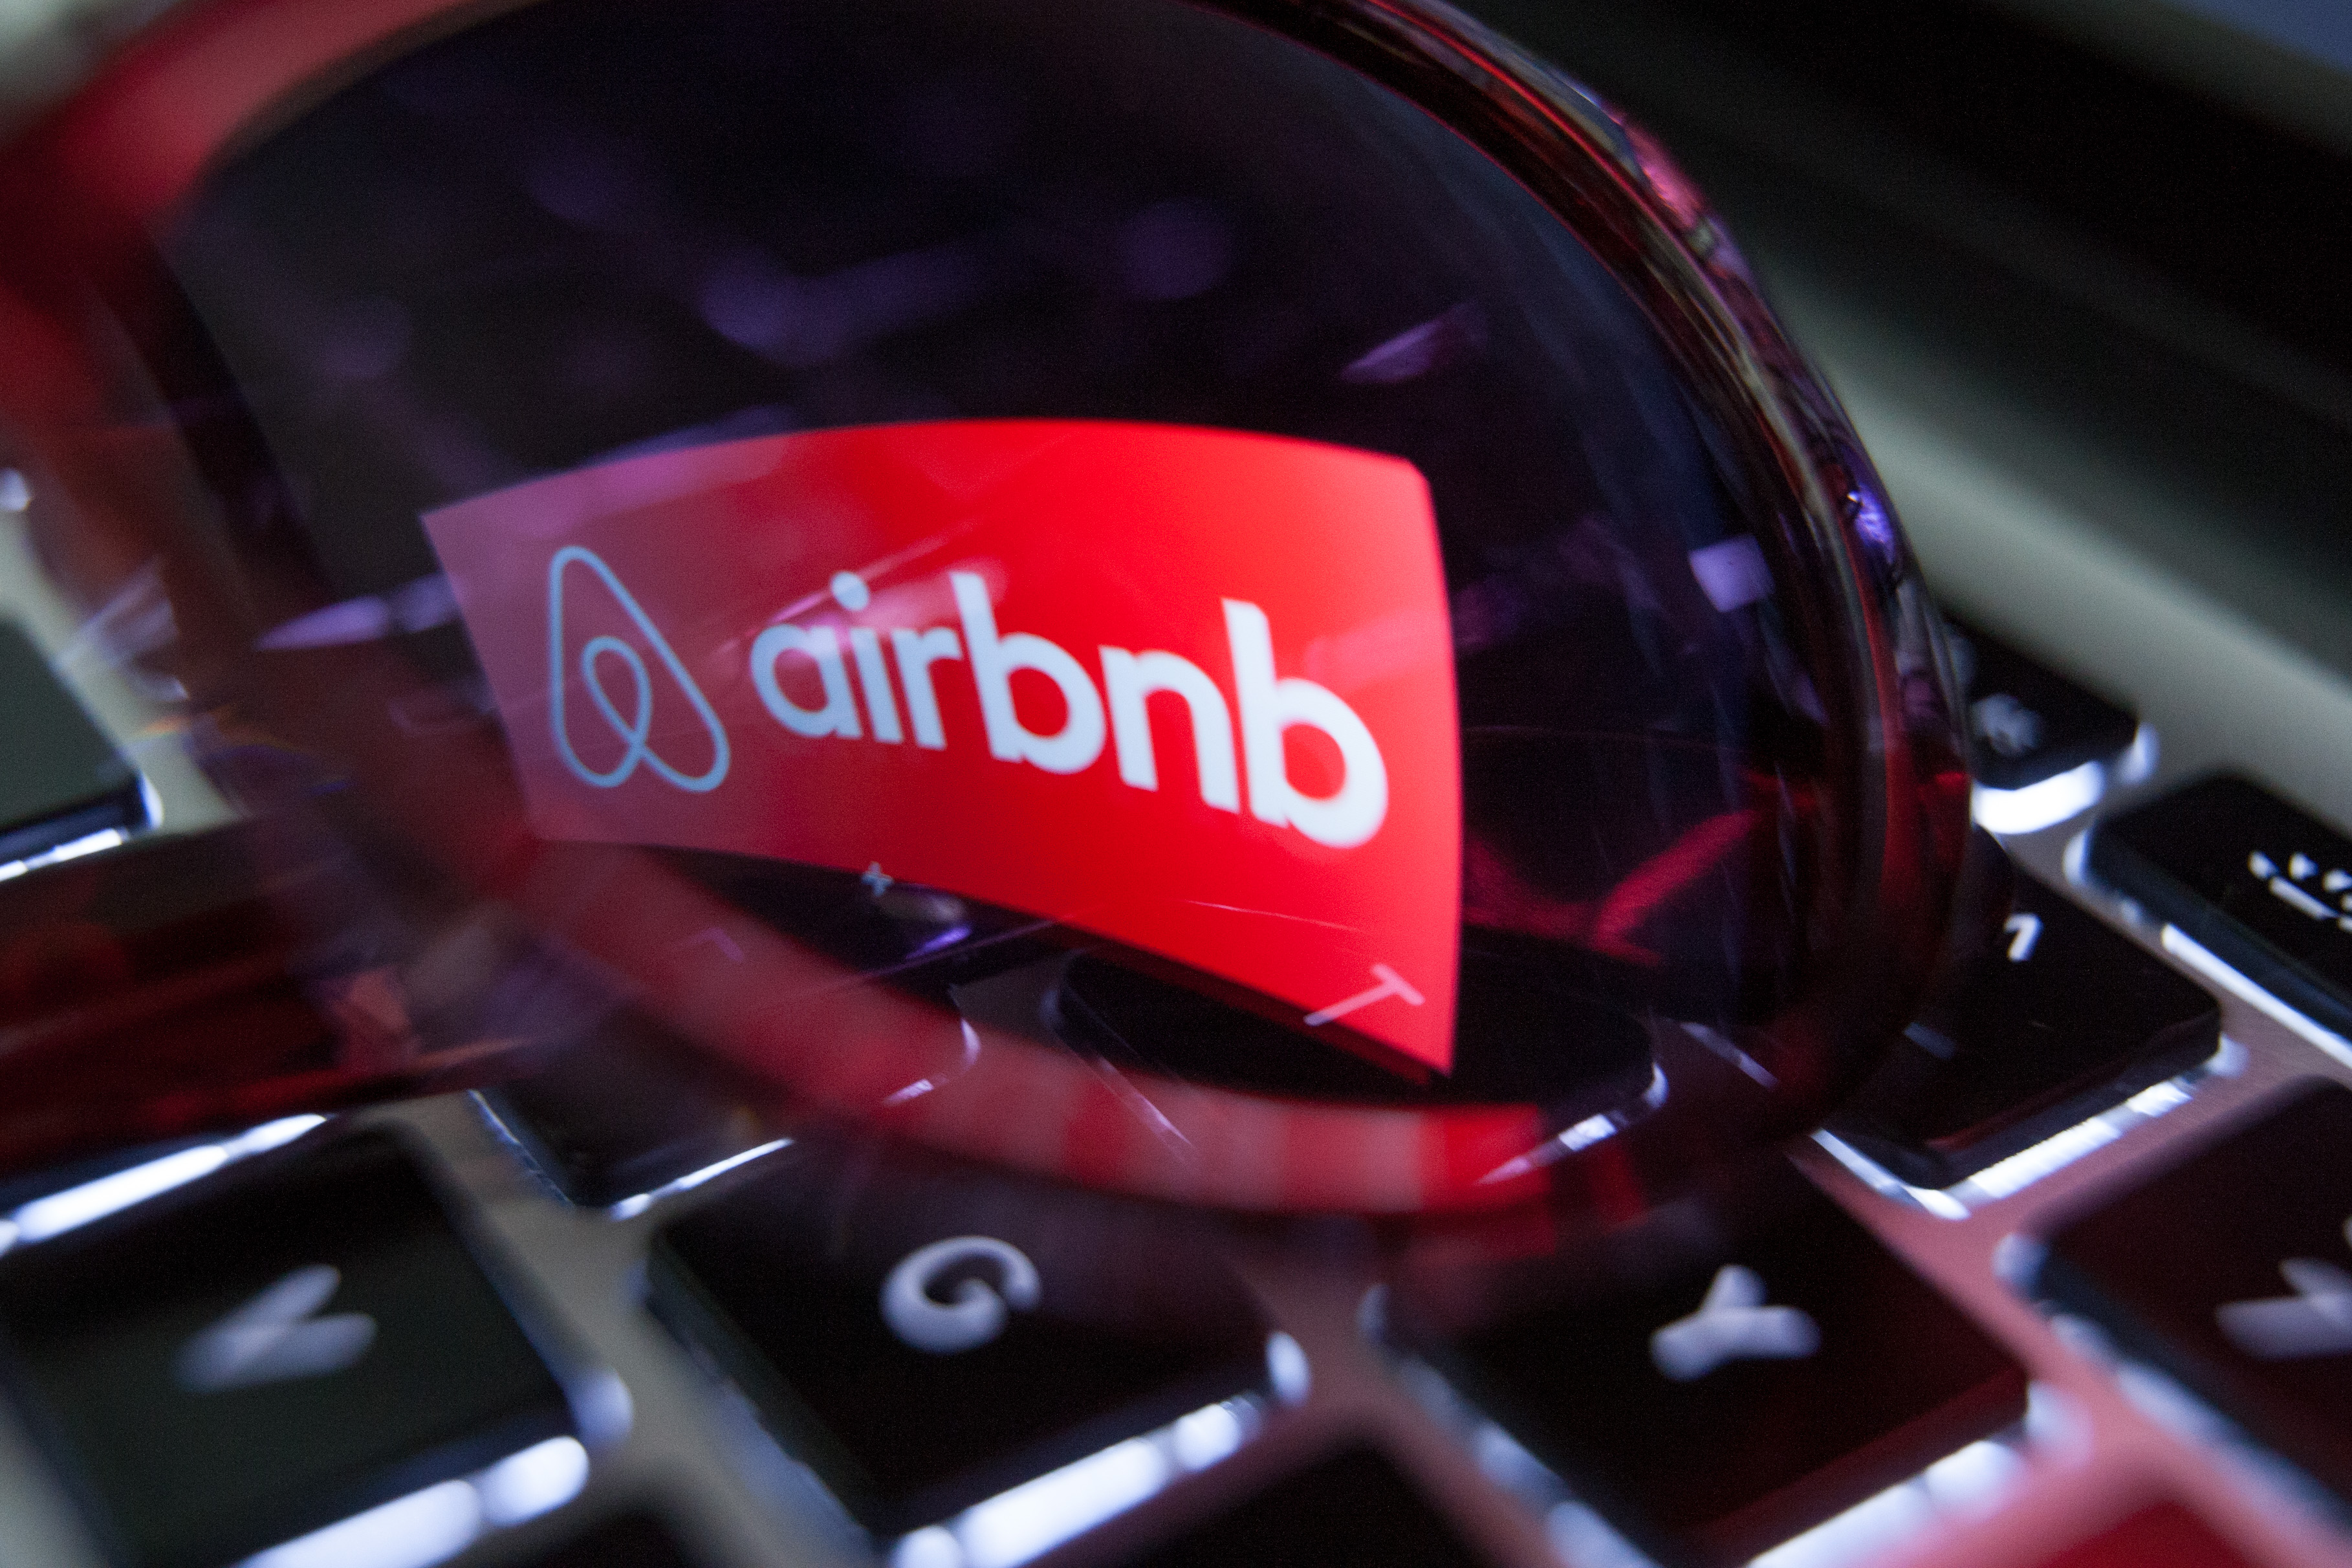 This undated photos shows the logo of Airbnb reflected on a pair of sunglasses.